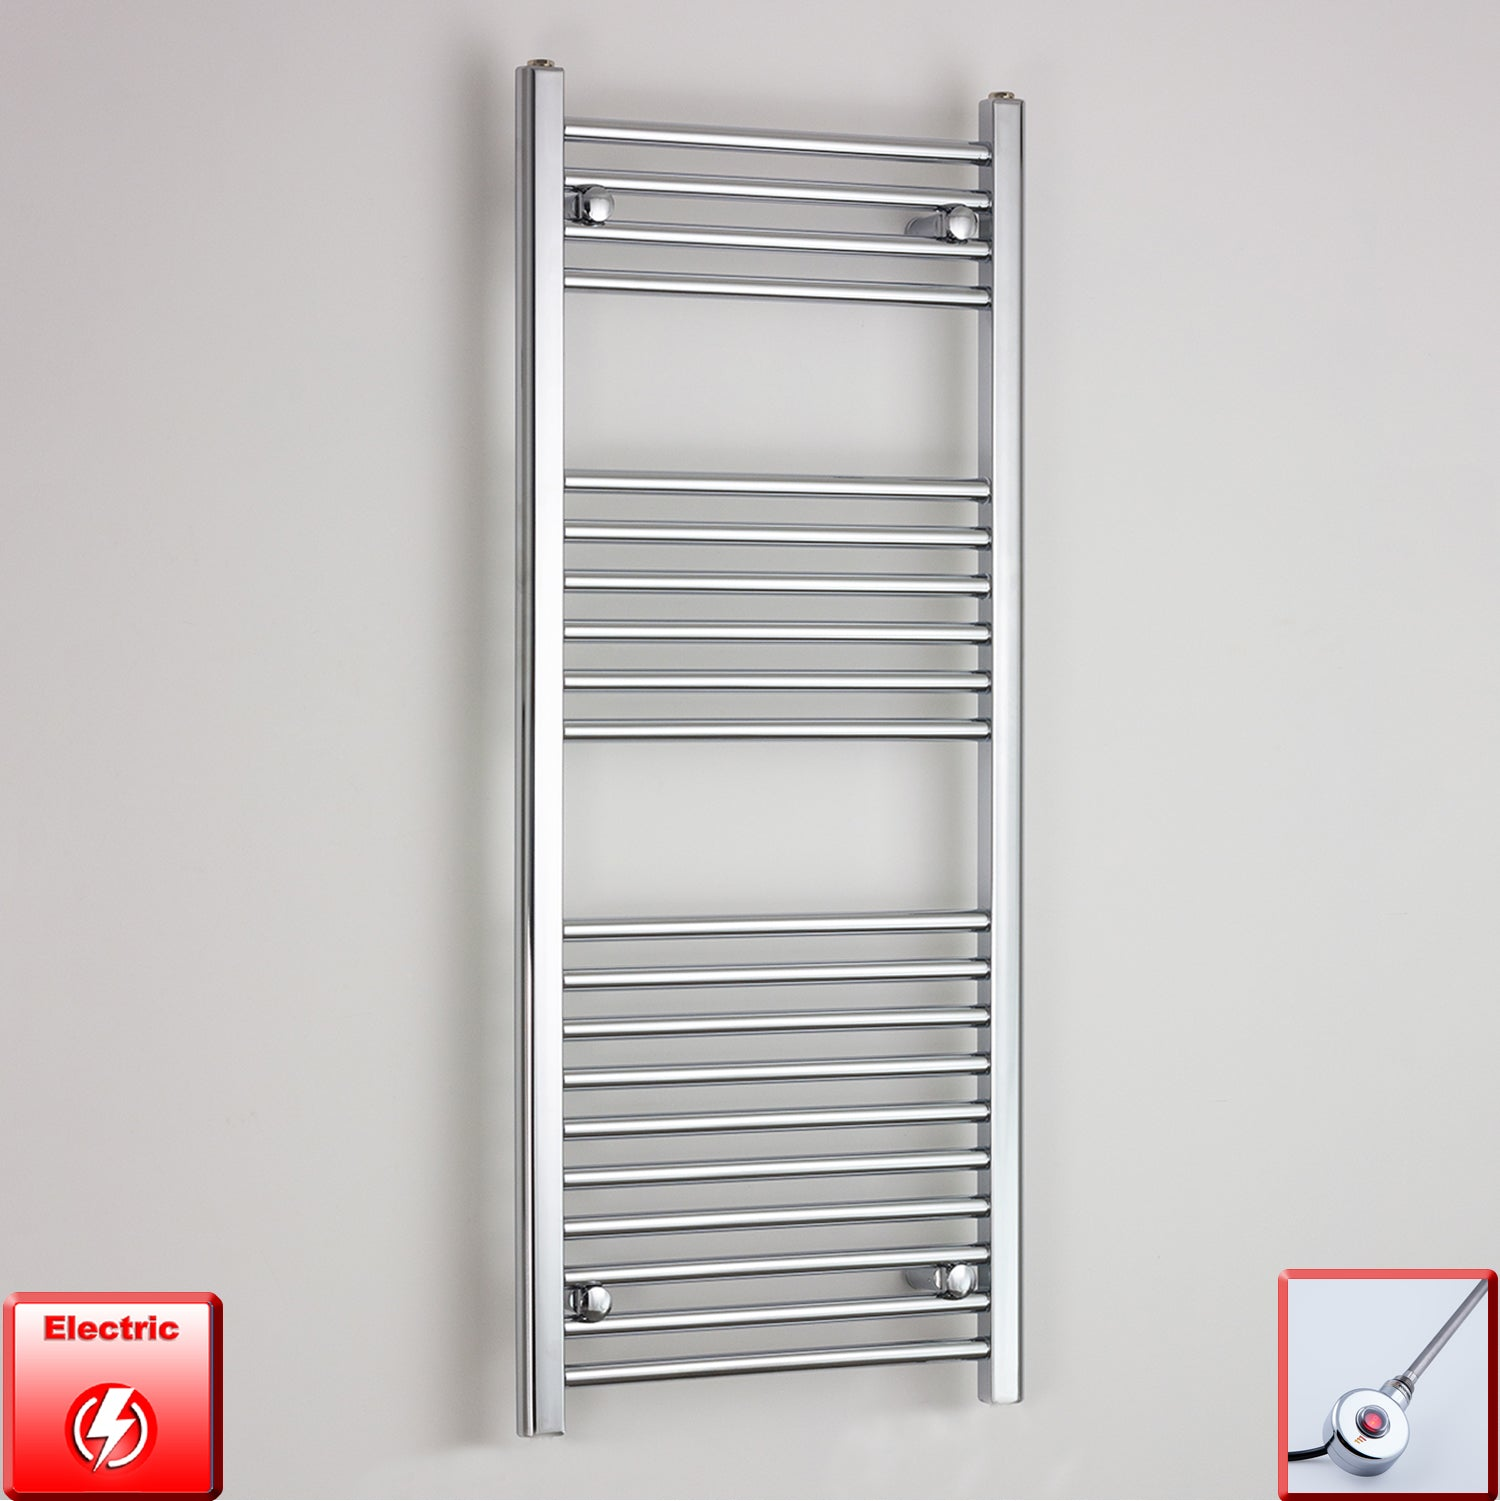 400mm Wide 1200mm High Flat Or Curved Chrome Pre-Filled Electric Heated Towel Rail Radiator HTR